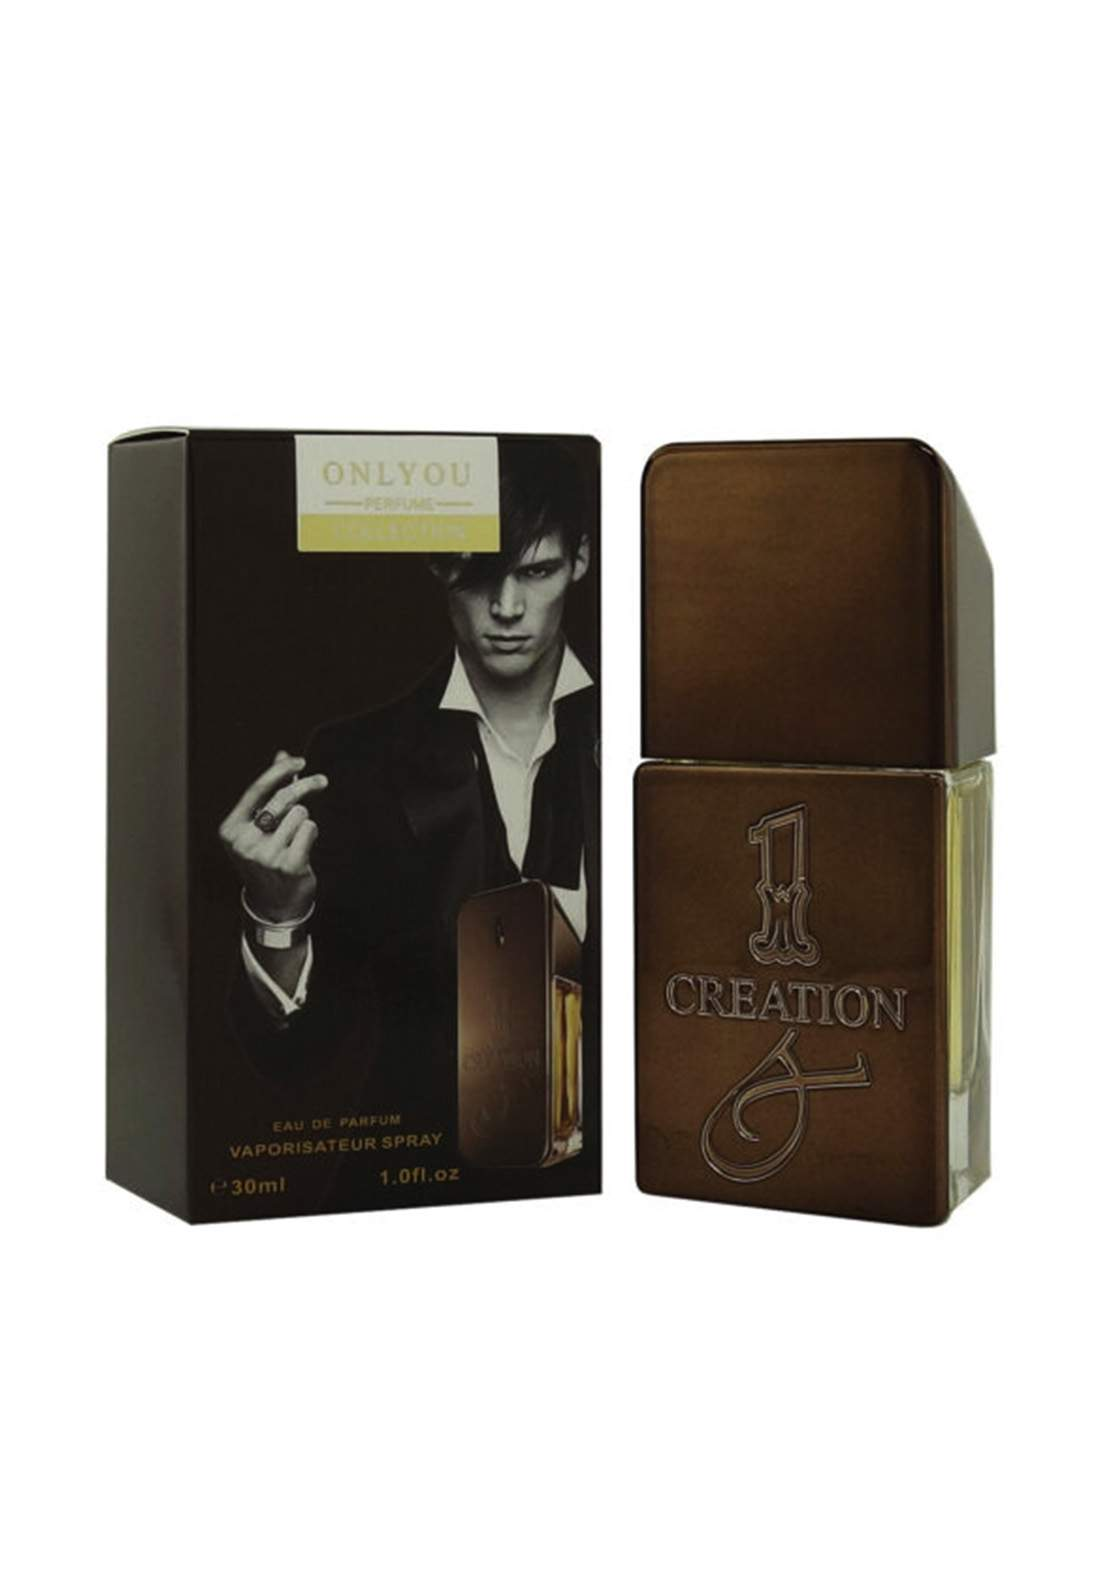 Onlyou Perfume Collection 1creation Edp 30ml For Men عطر رجالي